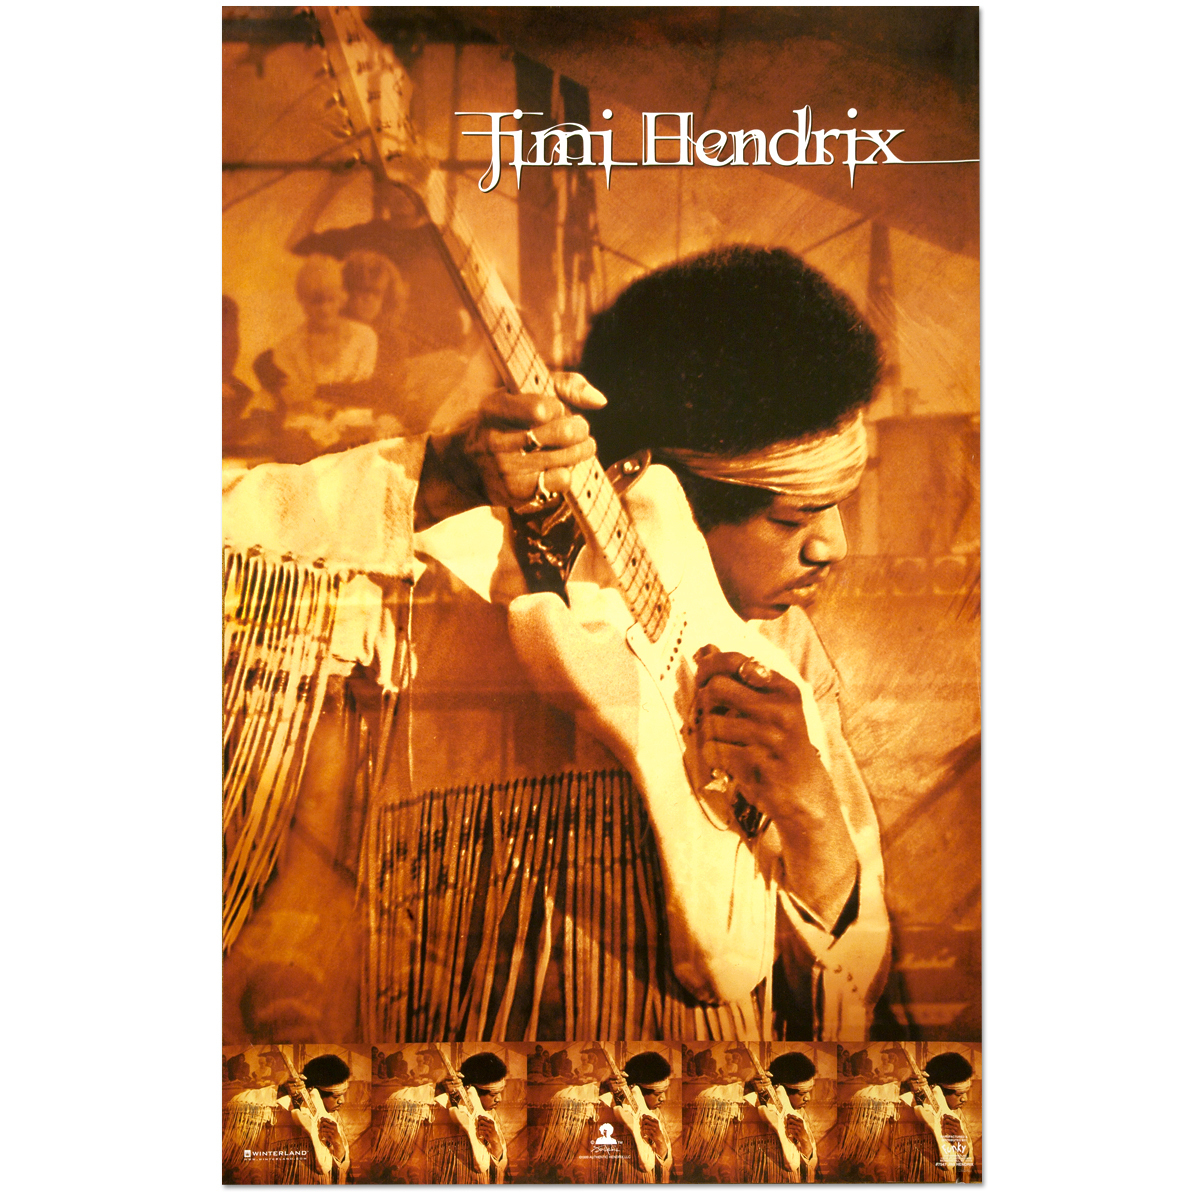 Authentic Hendrix The Official Jimi Hendrix Online Store